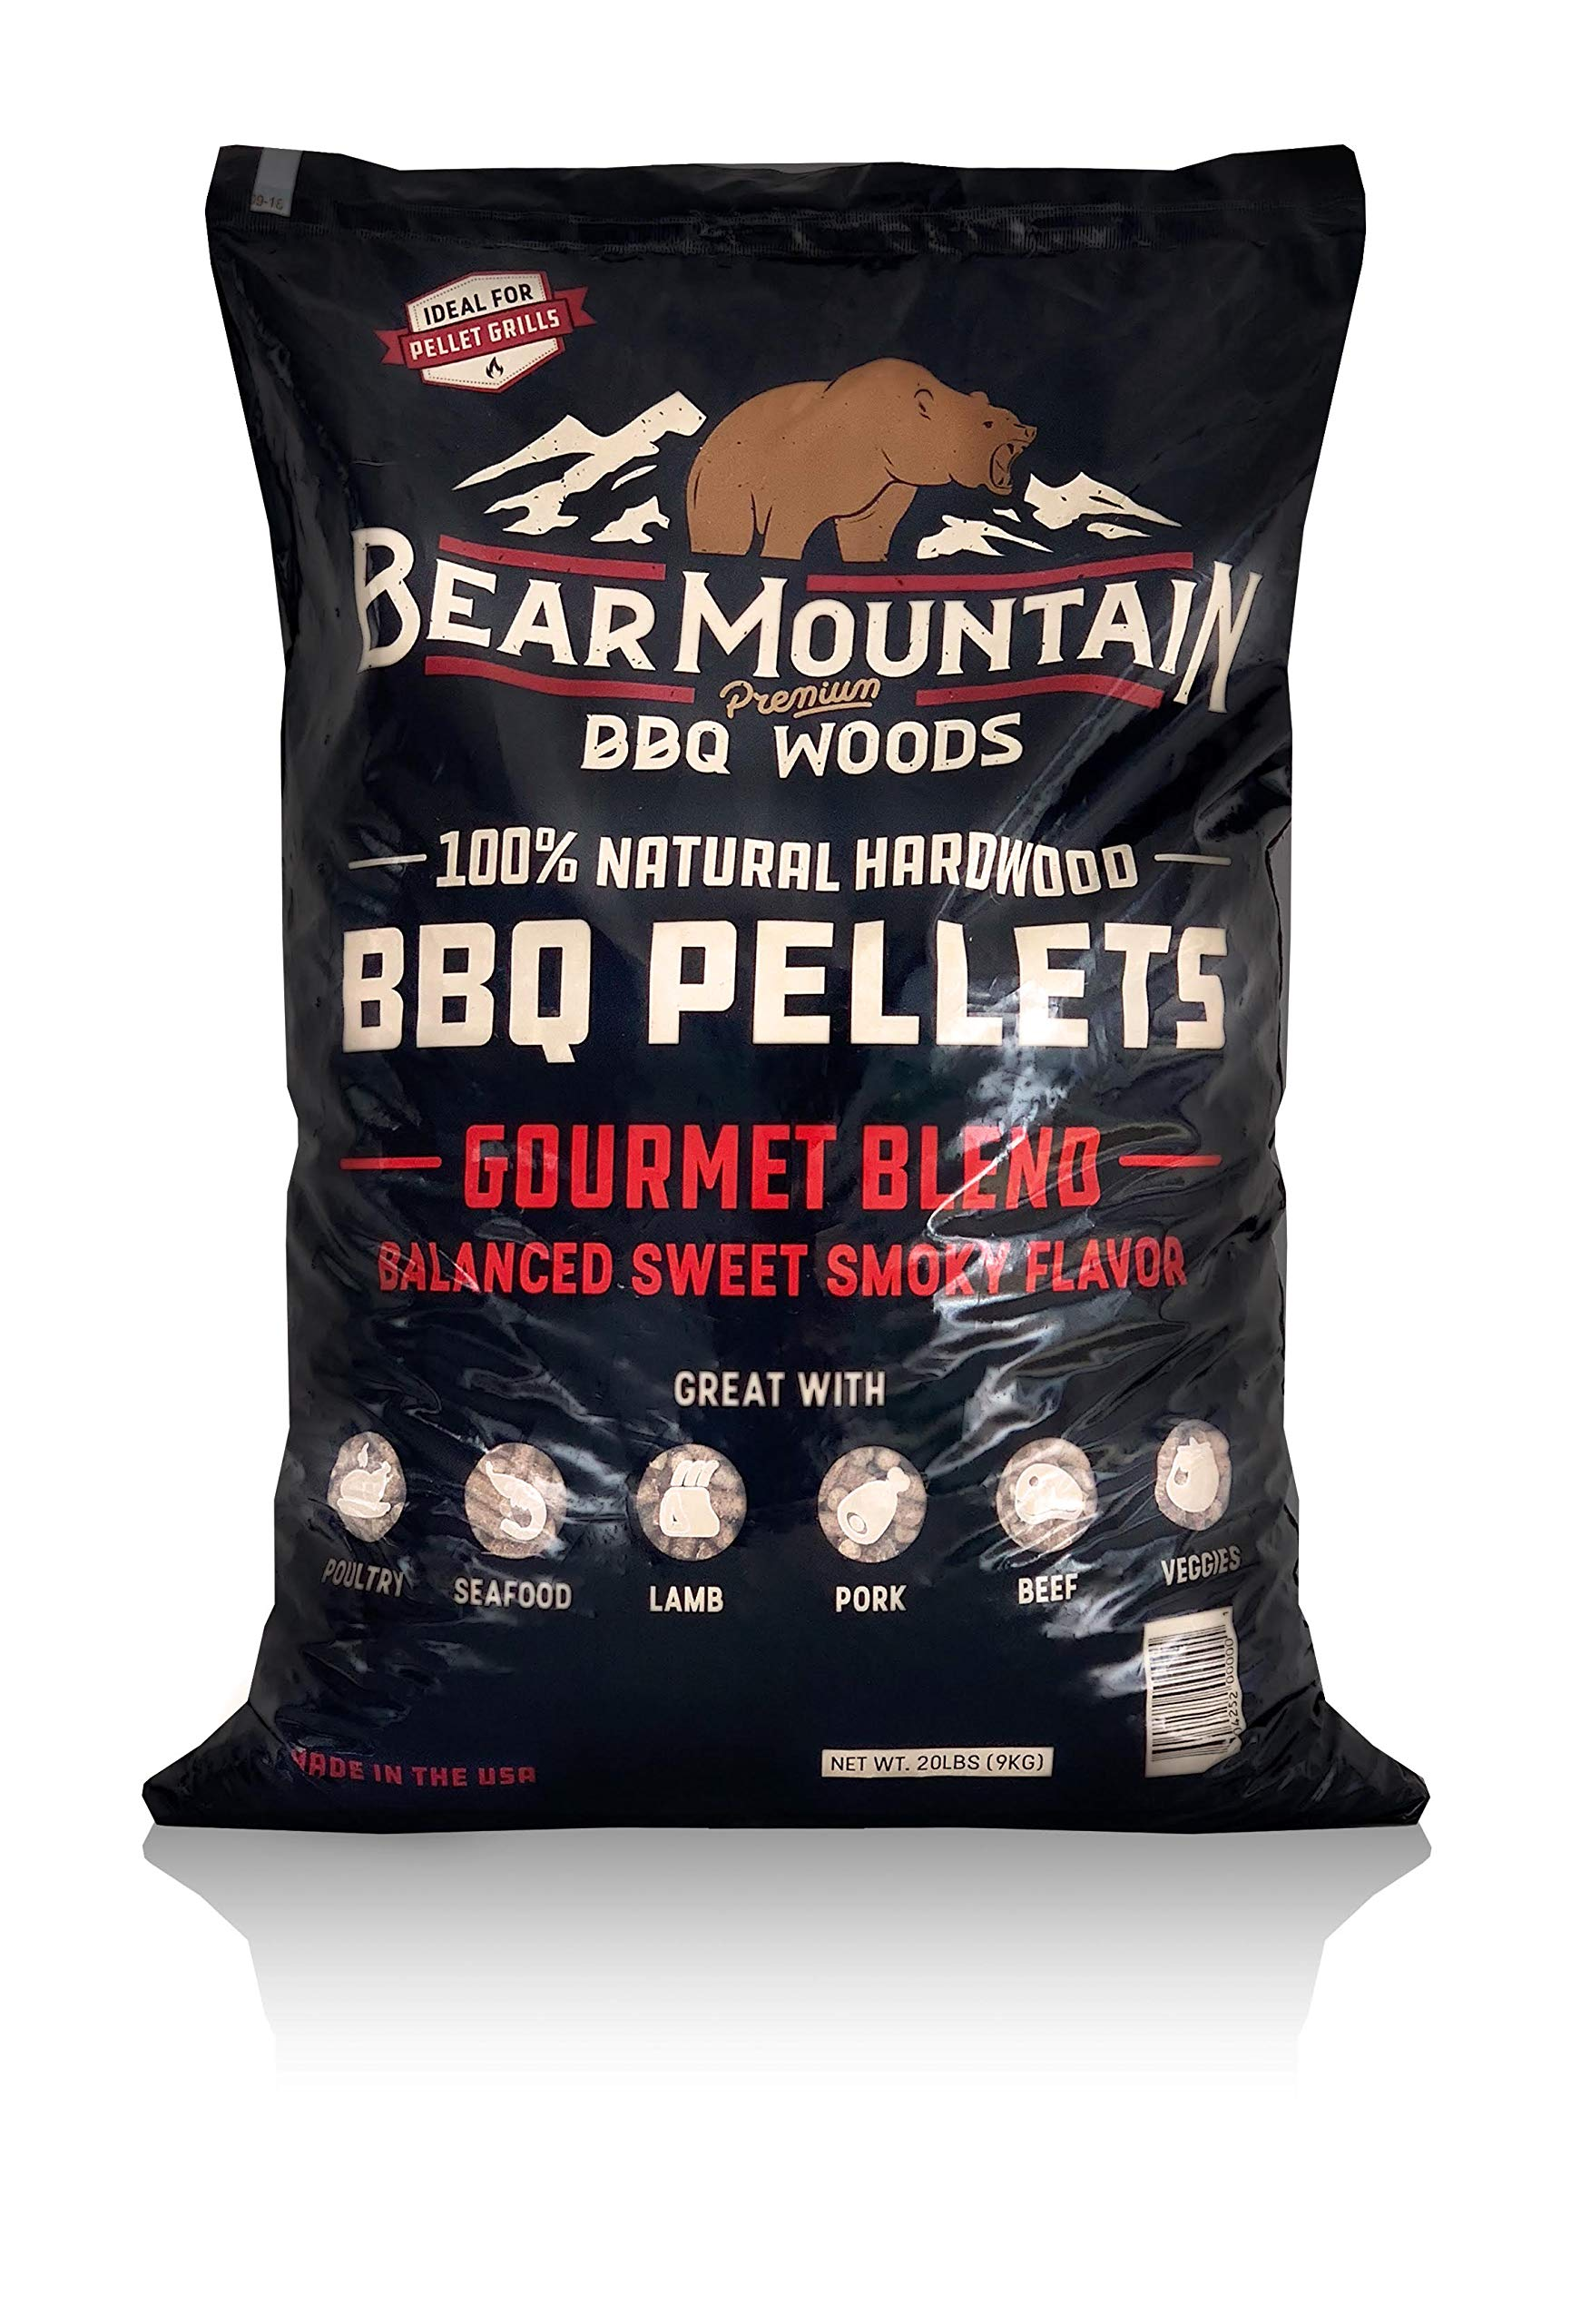 Bear Mountain BBQ 100% All-Natural Hardwood Pellets - Gourmet Blend (20 lb. Bag) Perfect for Pellet Smokers, or Any Outdoor Grill | Rich, Smoky Wood-Fired Flavor by Bear Mountain BBQ